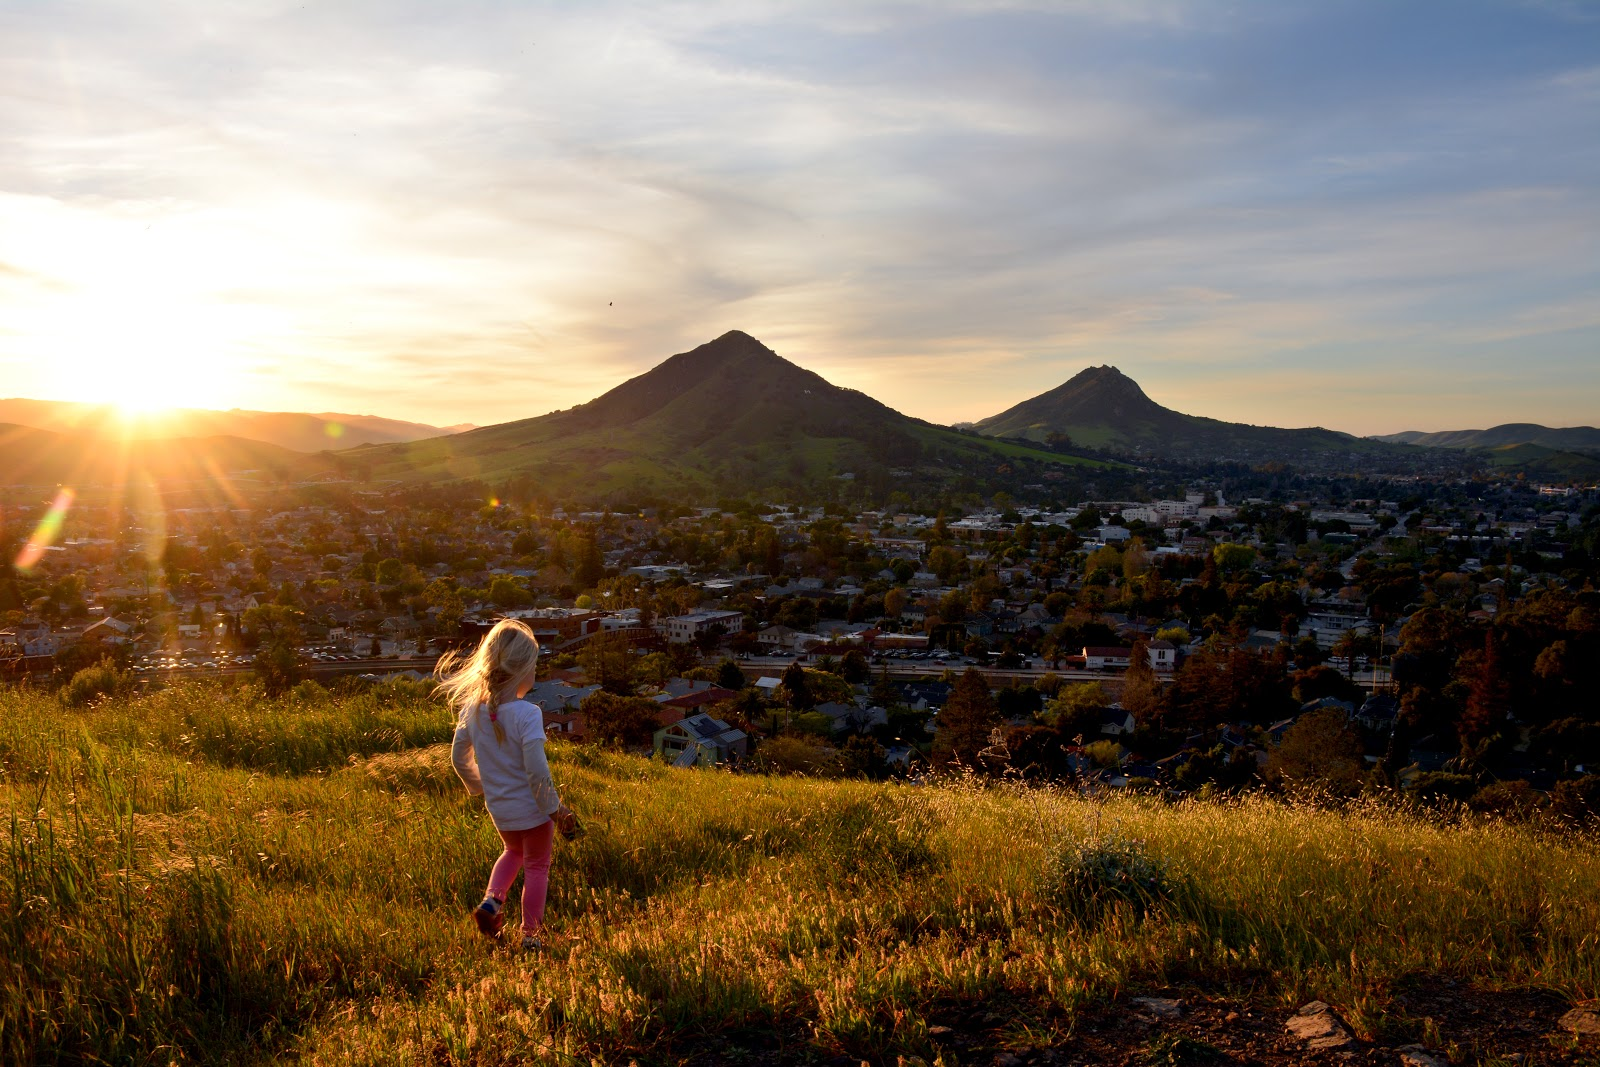 Beautiful Landscape of San Luis Obispo, California